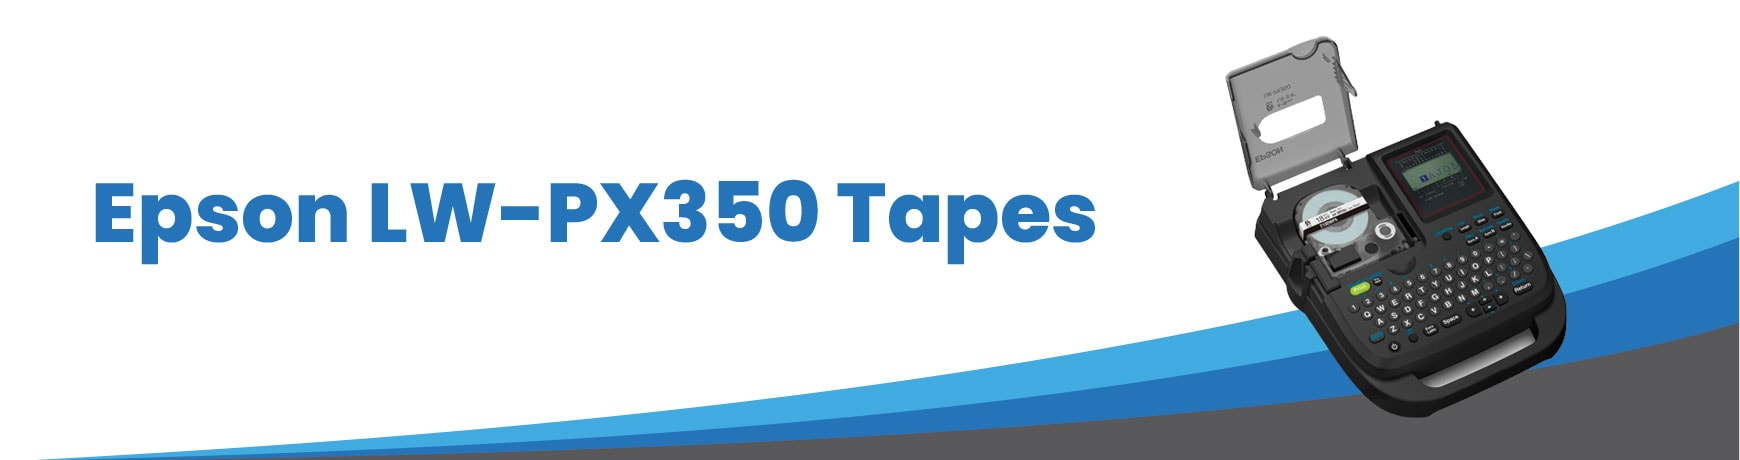 Epson LW-PX350 Tapes